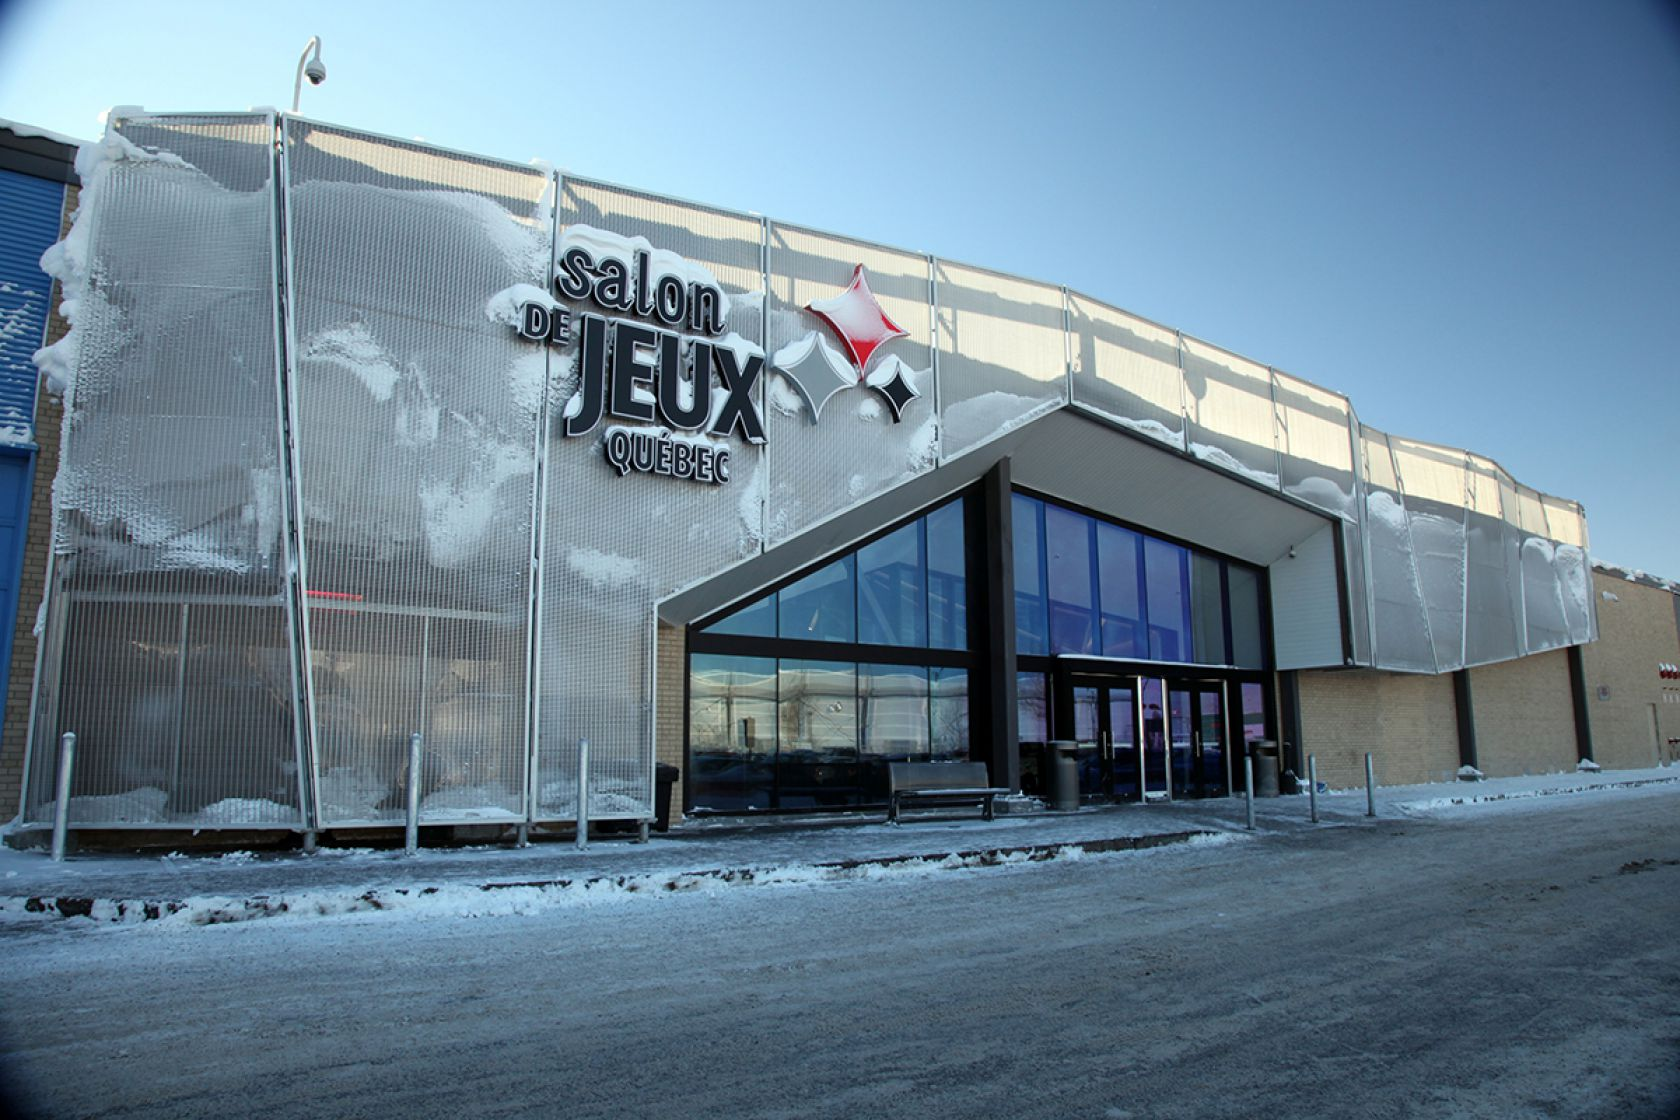 Salon de jeux de qu bec r alisations claude miville inc for Salon de the quebec